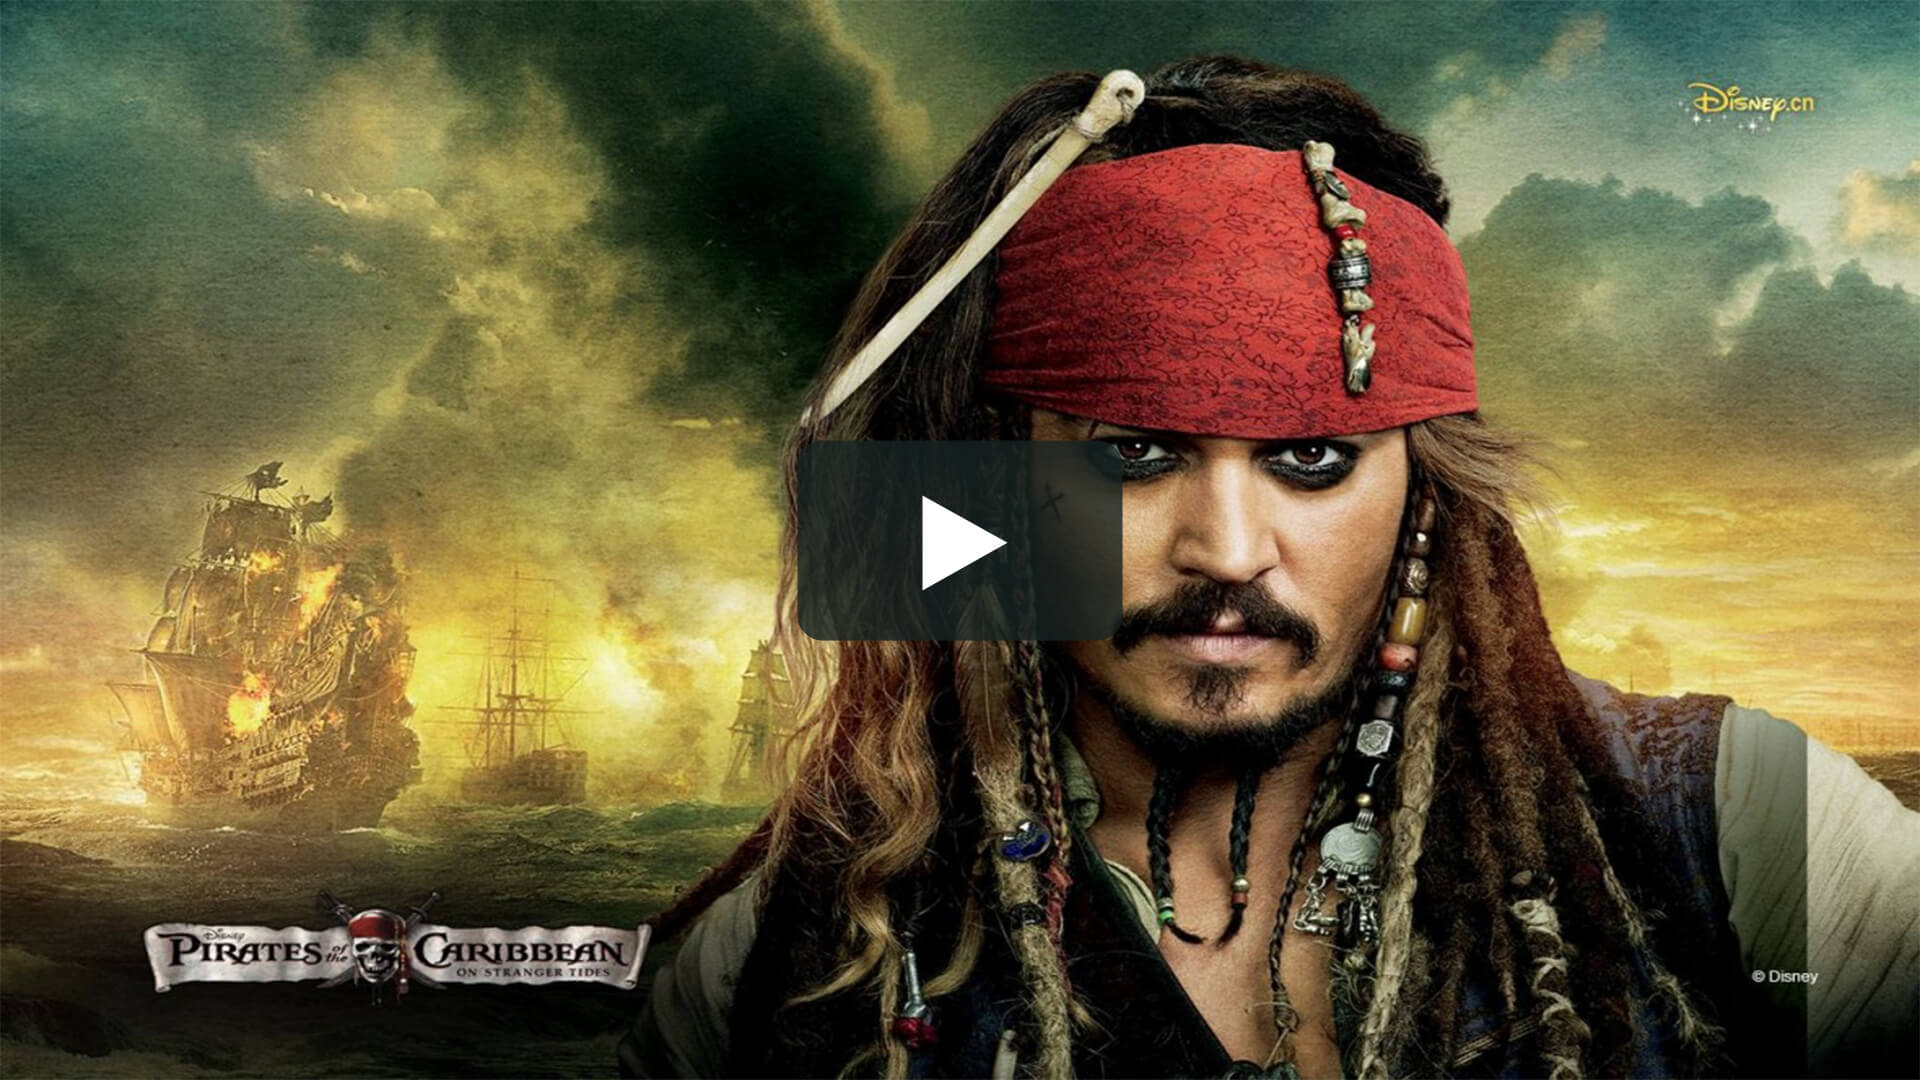 Pirates of the Caribbean: The Curse of the Black Pearl - 加勒比海盜:黑珍珠號的詛咒